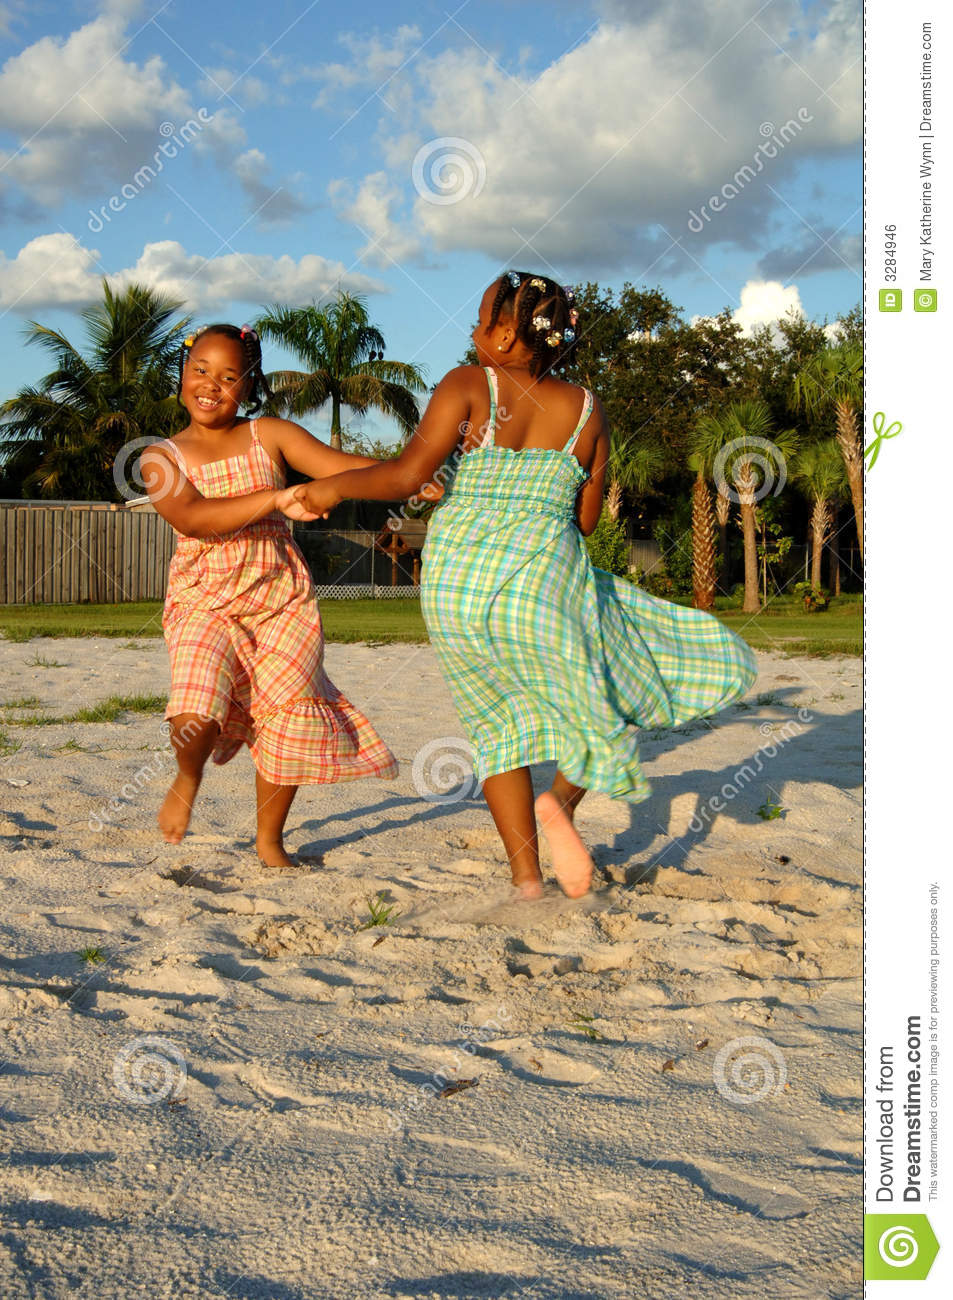 Girls dancing on sand at beach